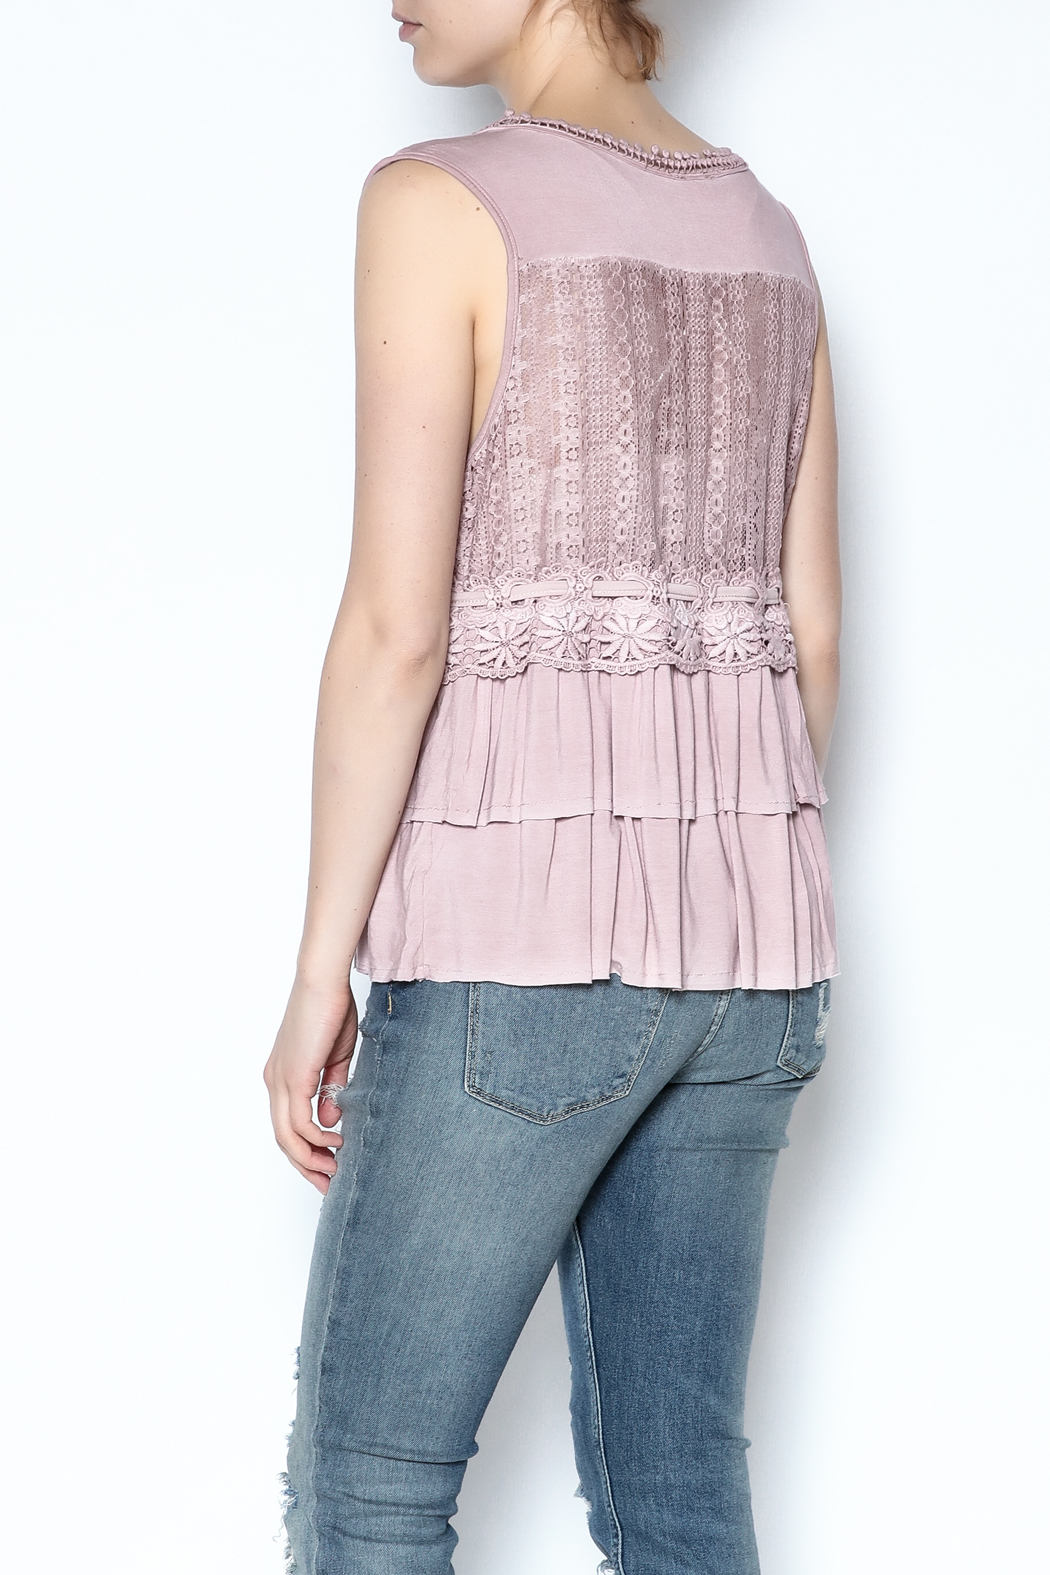 The Vintage Valet Pink Ruffle Tank - Back Cropped Image